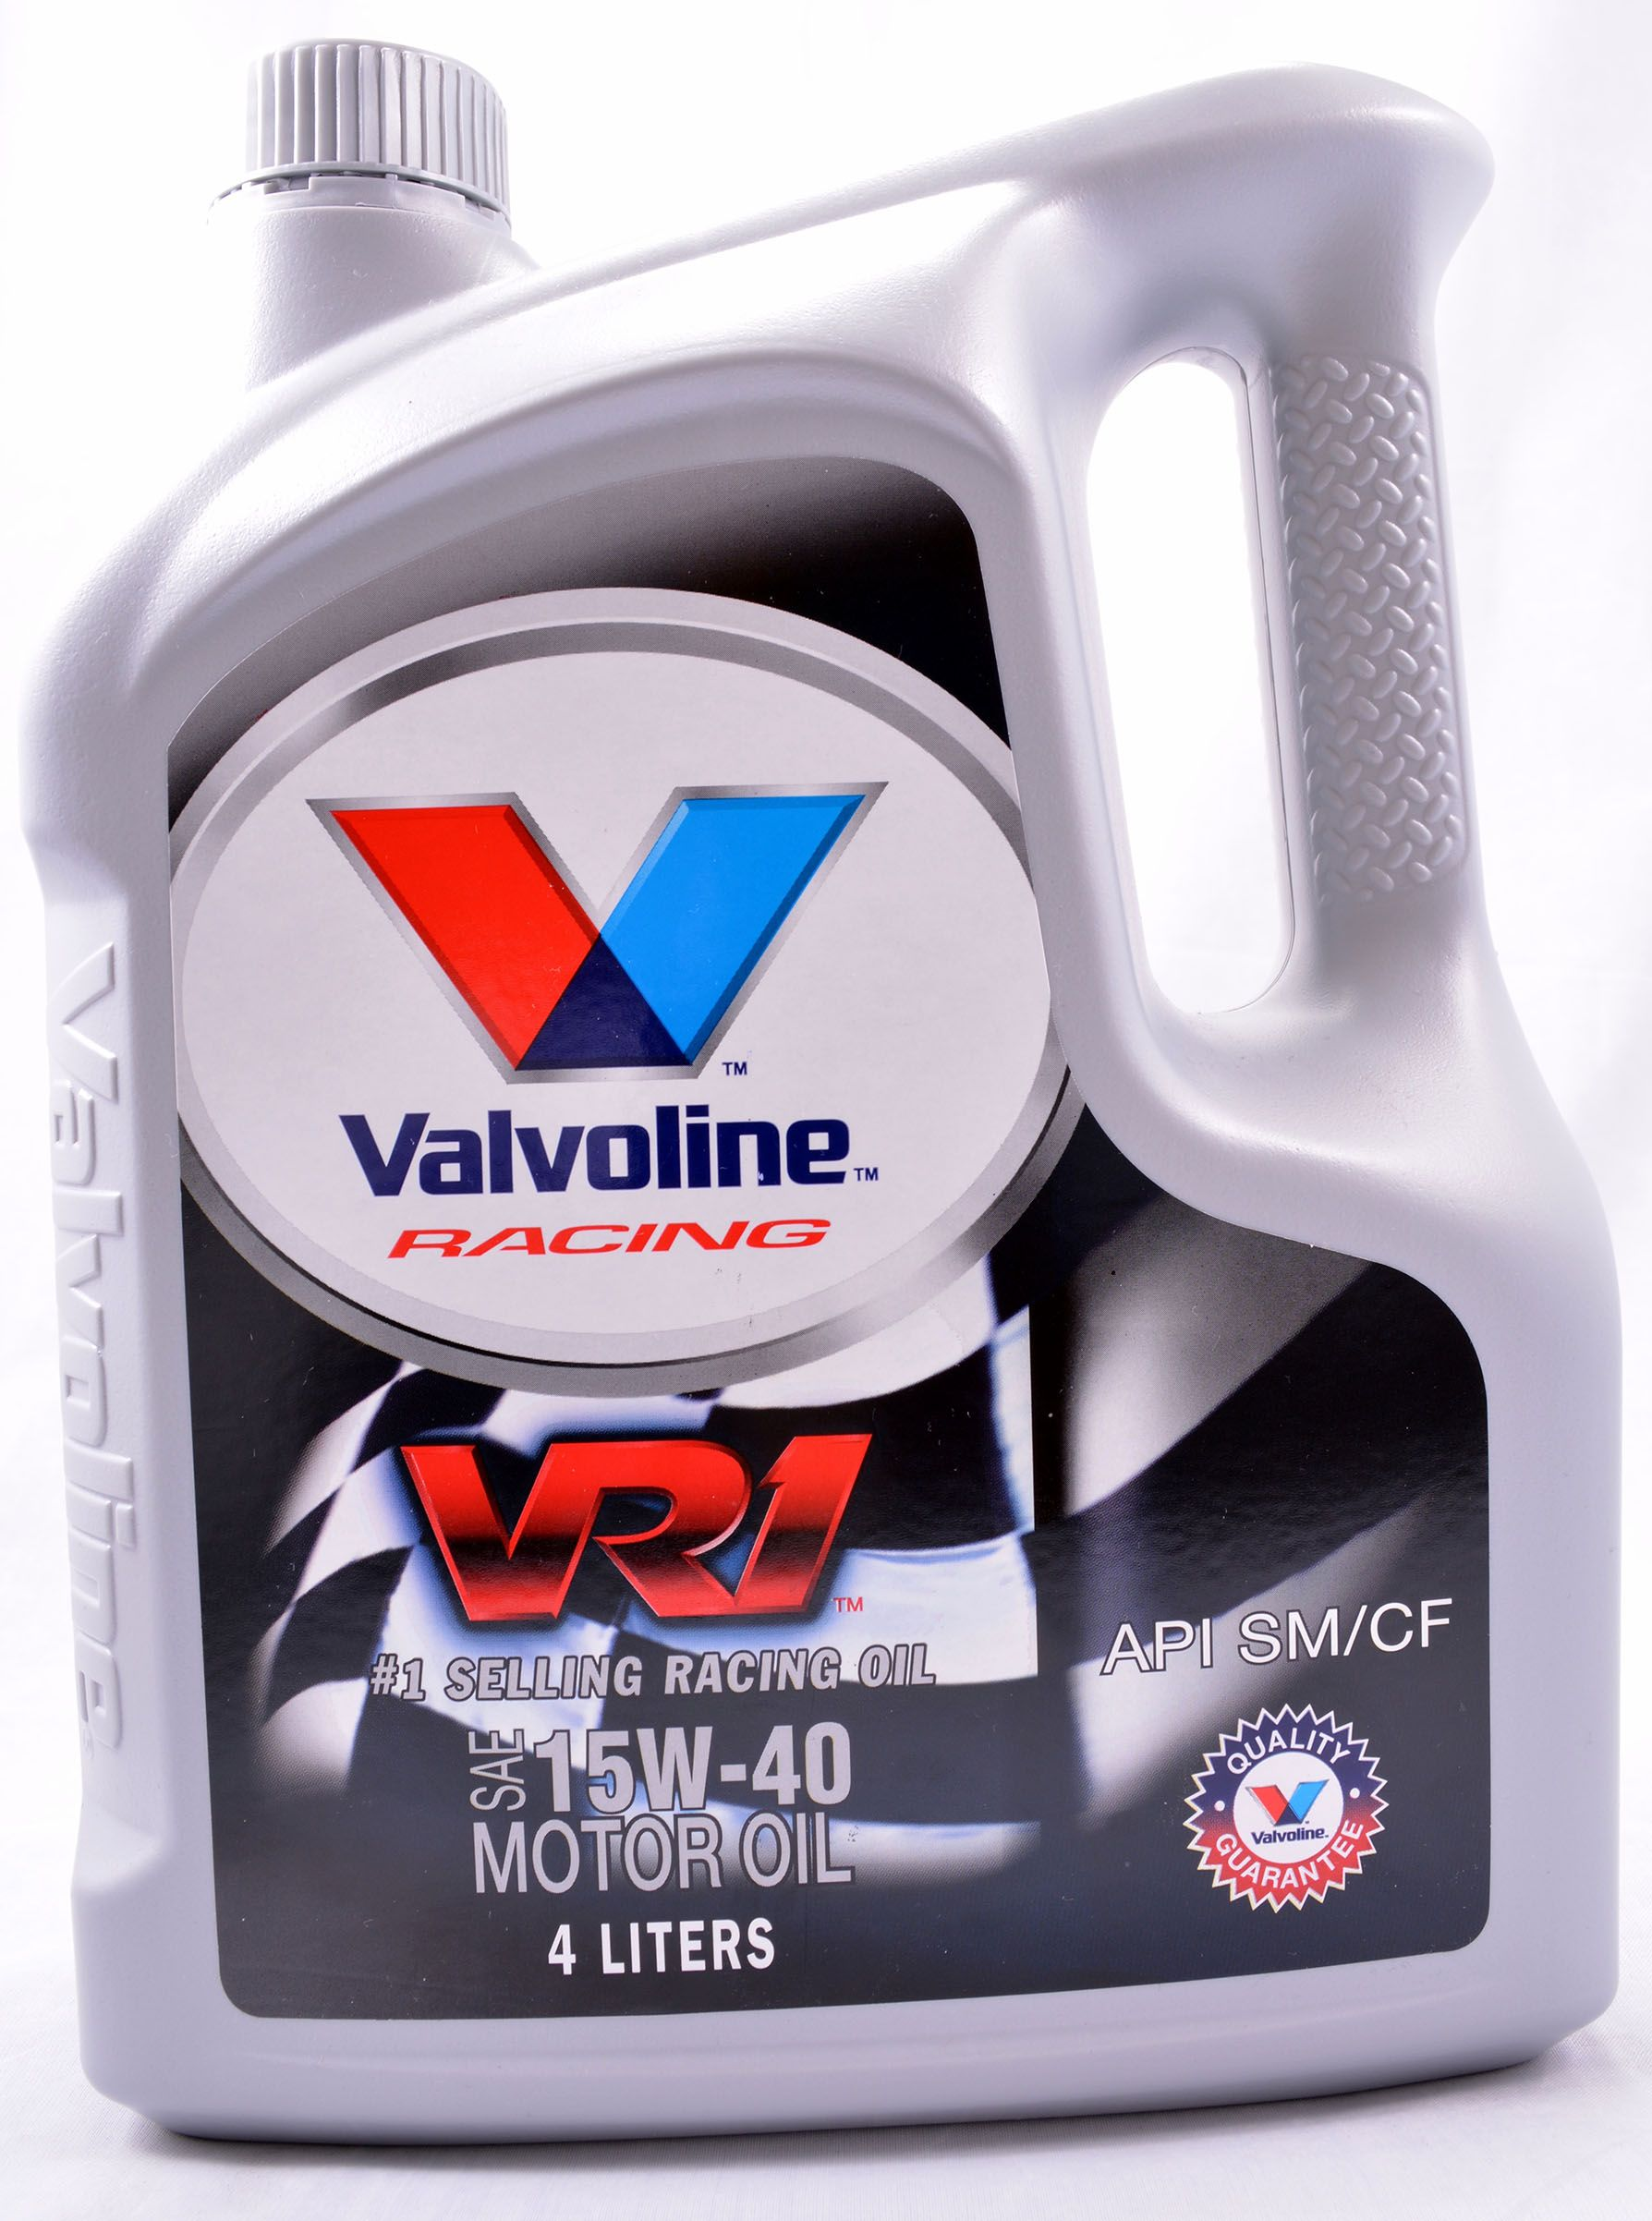 Valvoline Vr1 Racing 15w40 Mineral Petrol Engine Oil